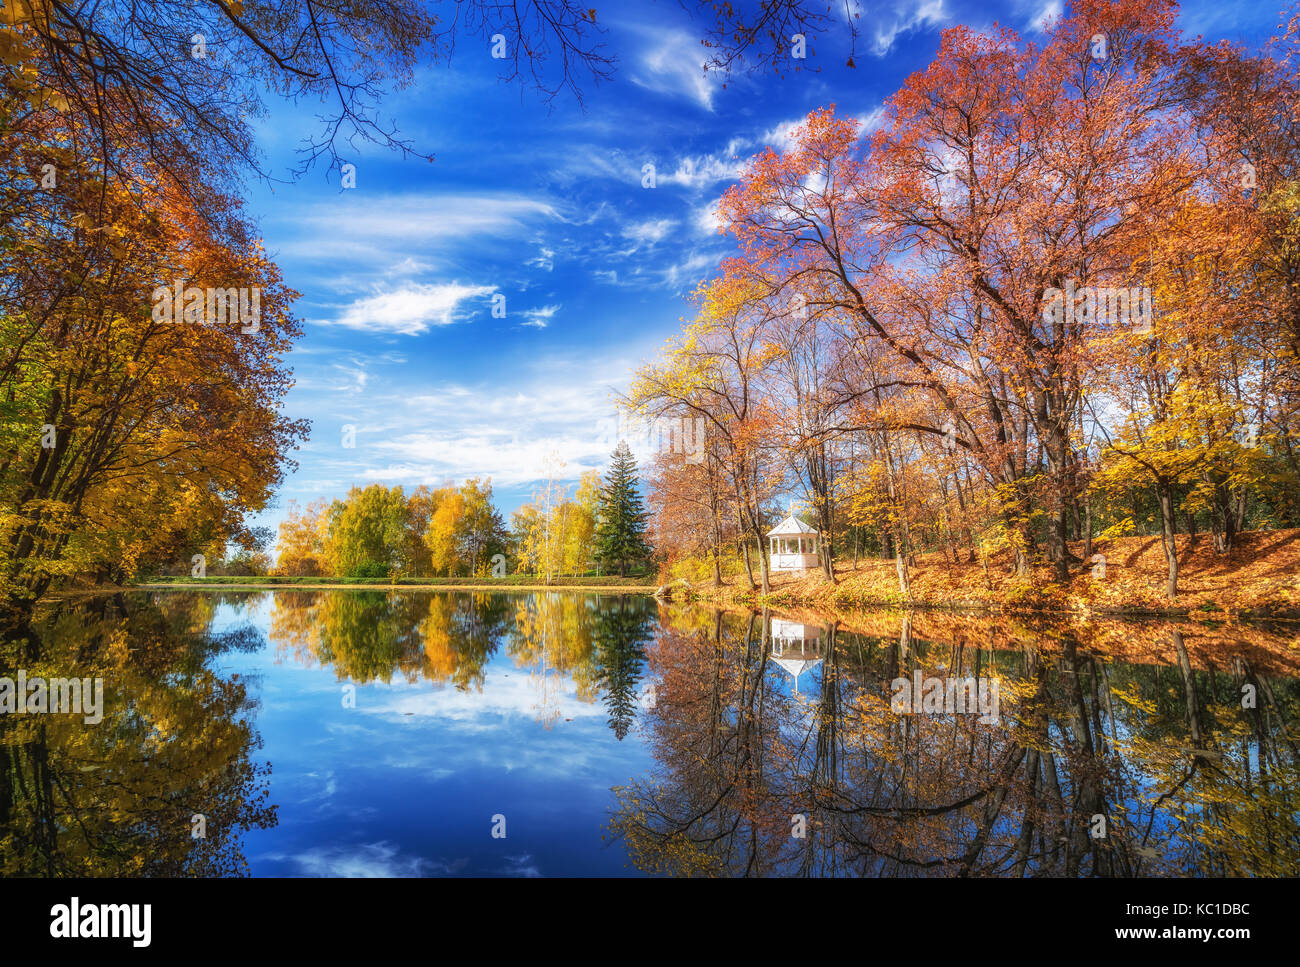 Sunny autumn in the park over lake - Stock Image